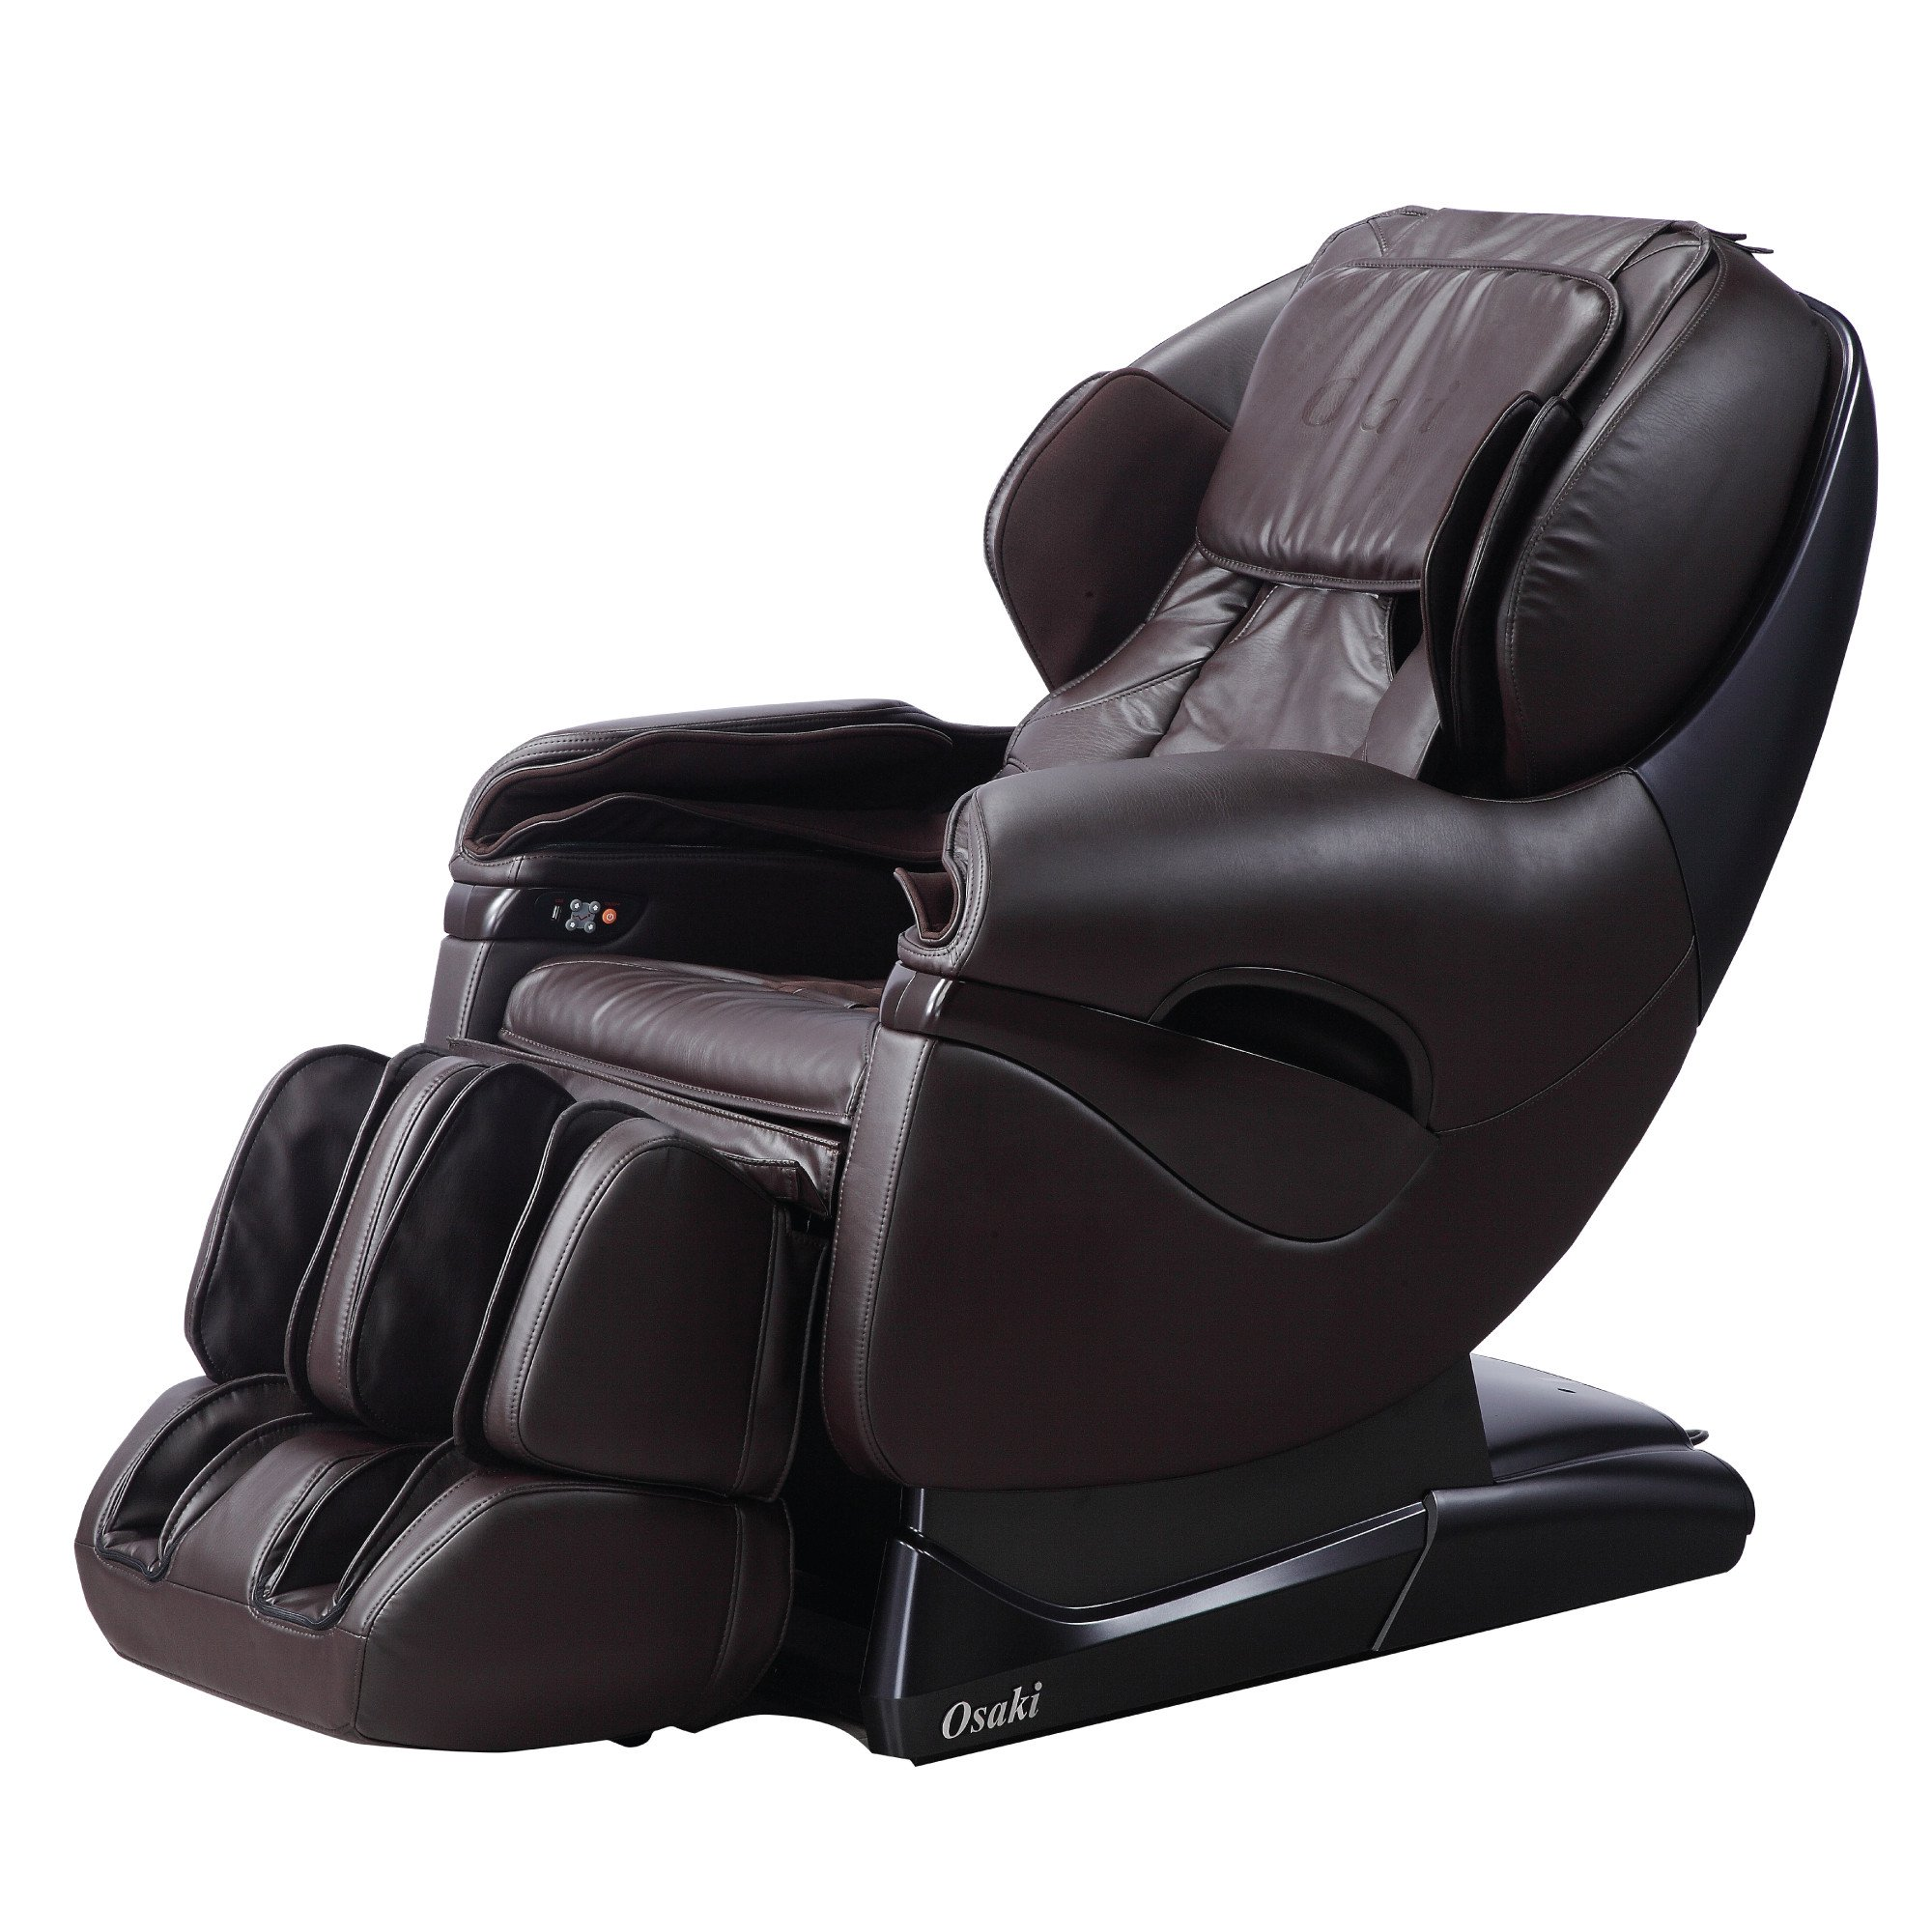 Titan OS-8500 Massage Chair - Brown - Front Angle View